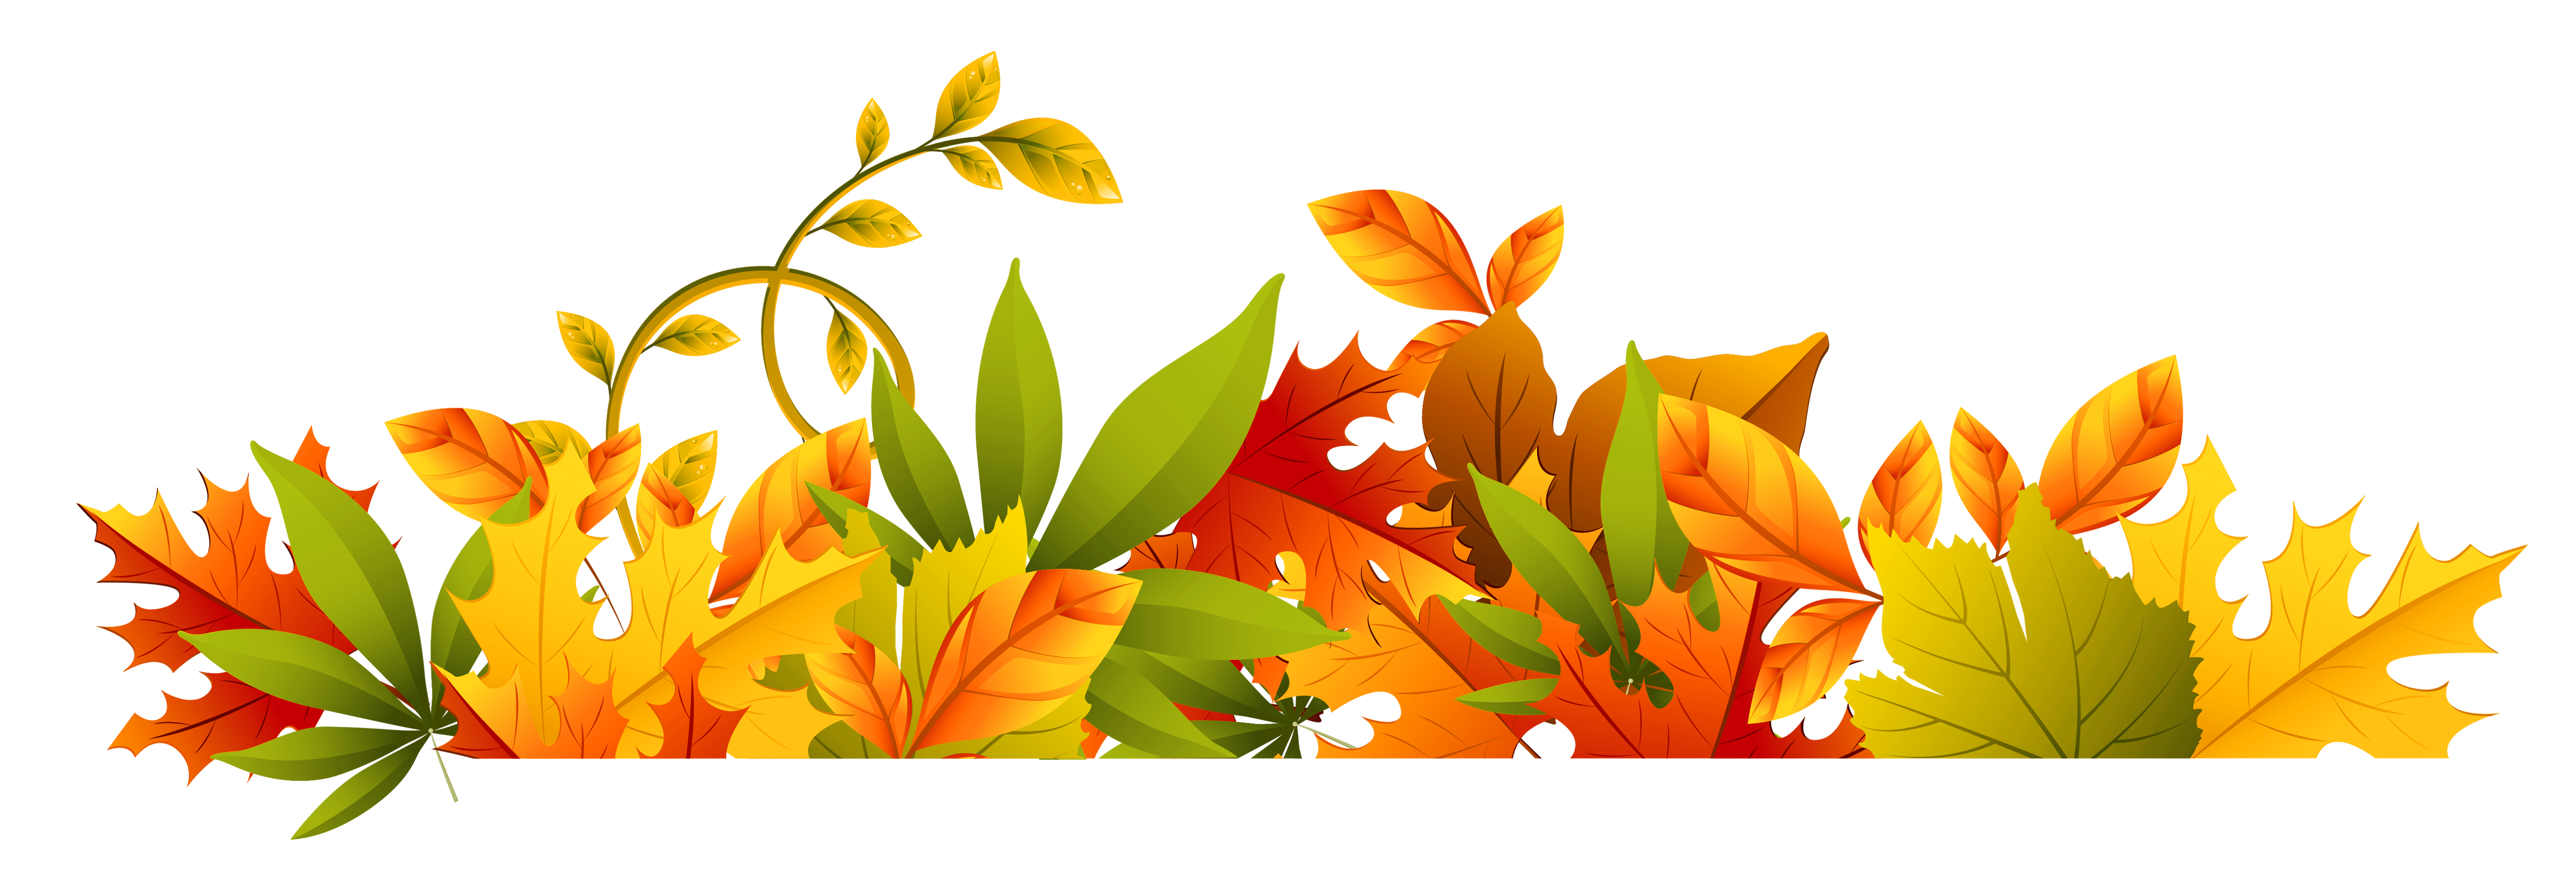 Fall harvest thanksgiving photo clipart freeuse download Transparent Autumn Border PNG Clipart | Gallery Yopriceville - High ... freeuse download